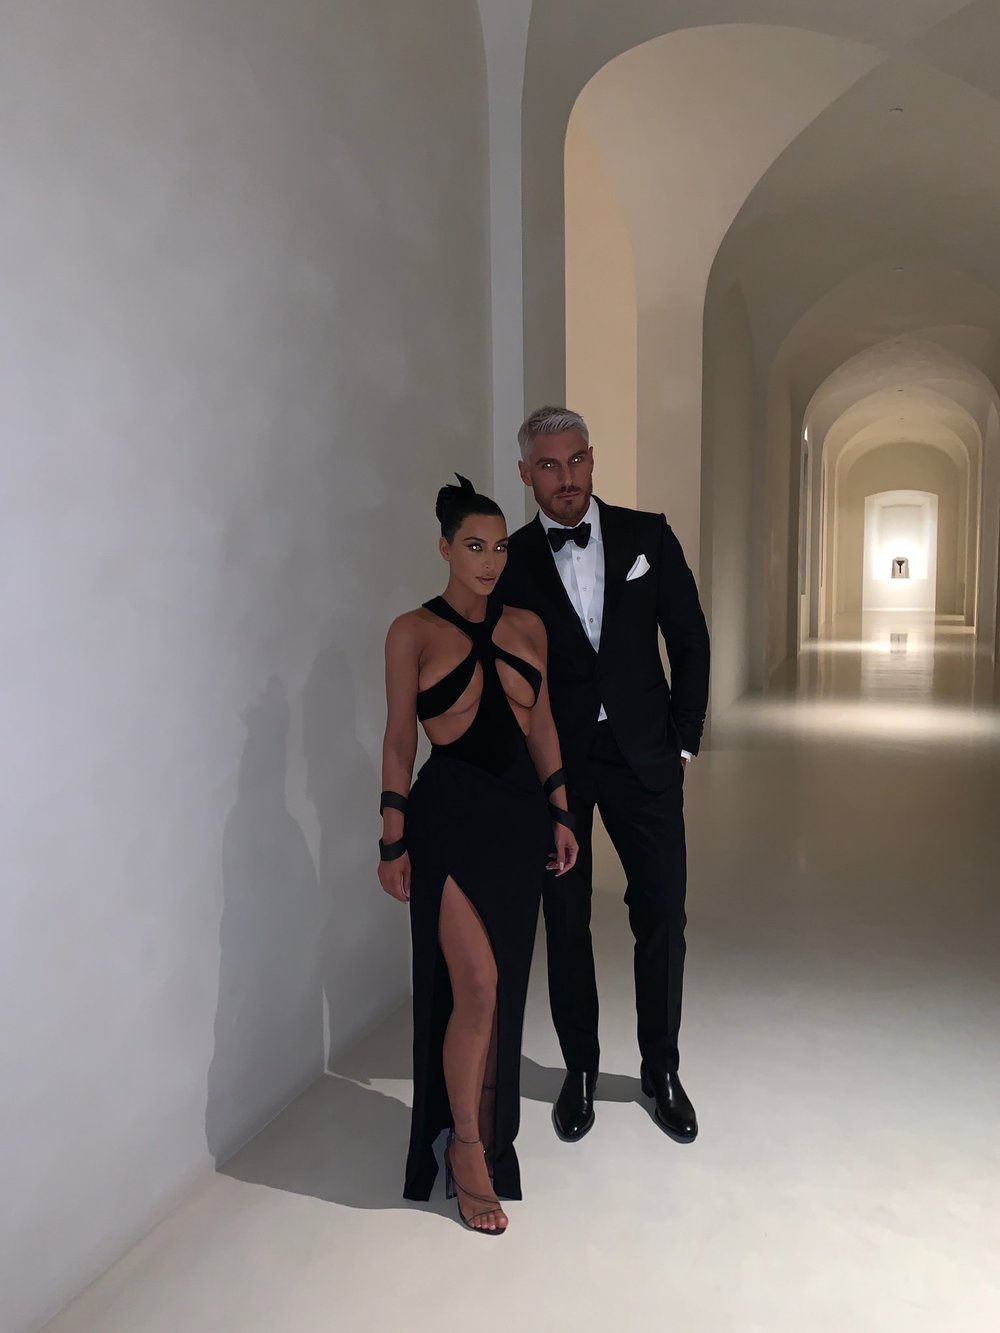 - Kim Kardashian with unknown guest in a long (empty) hallway.